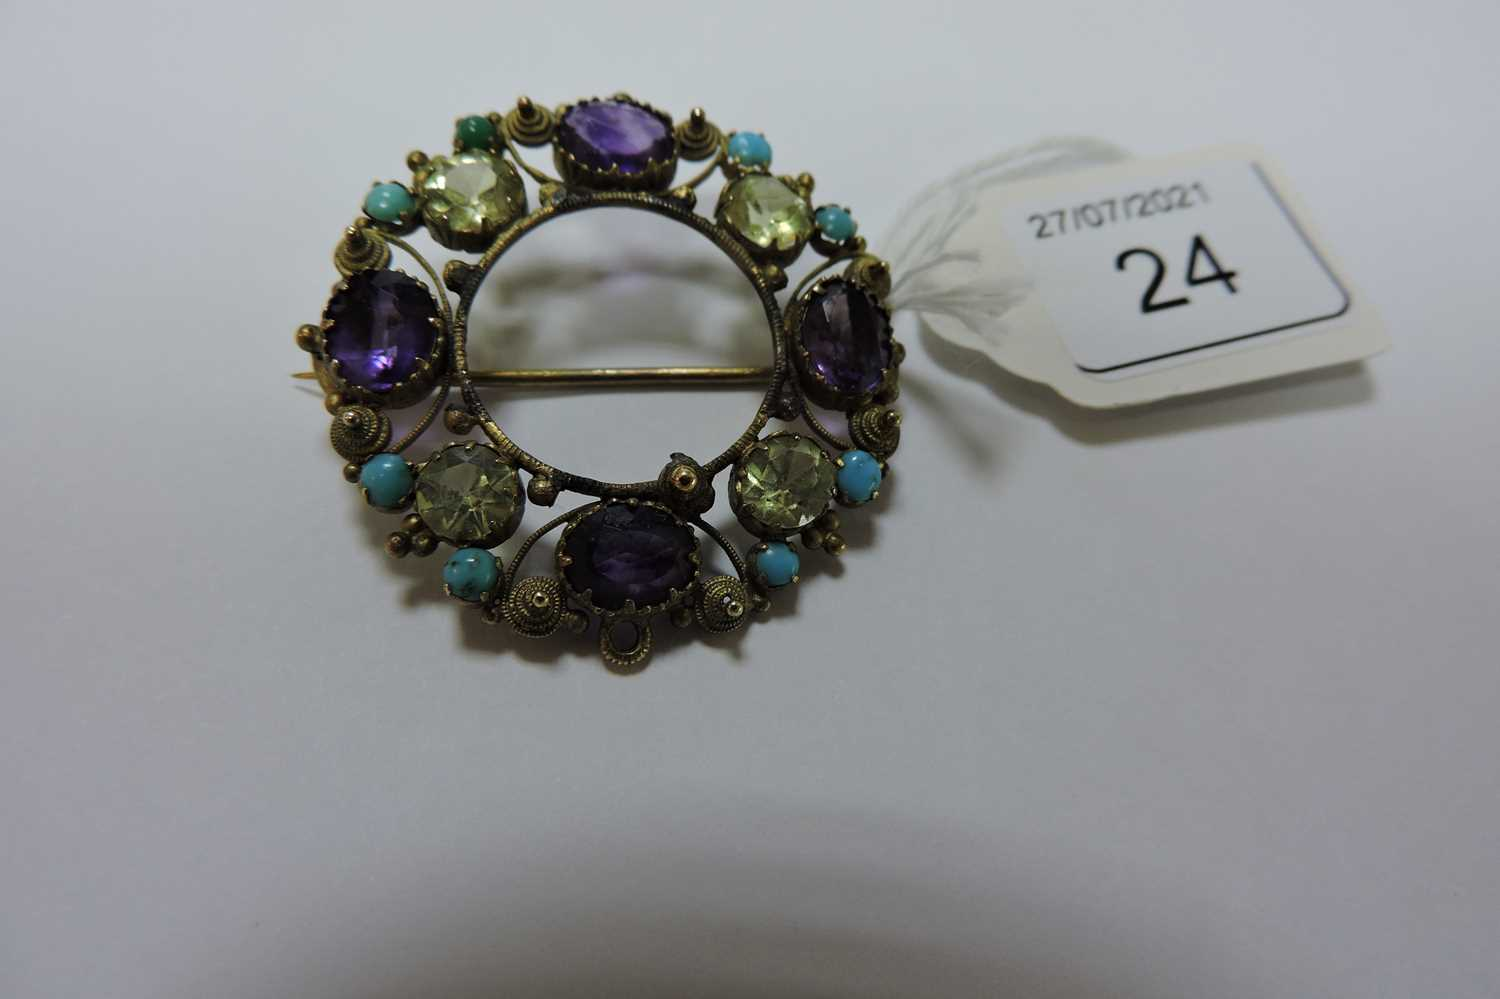 A Regency gold amethyst, chrysolite and turquoise cannetille brooch/pendant, - Image 2 of 3